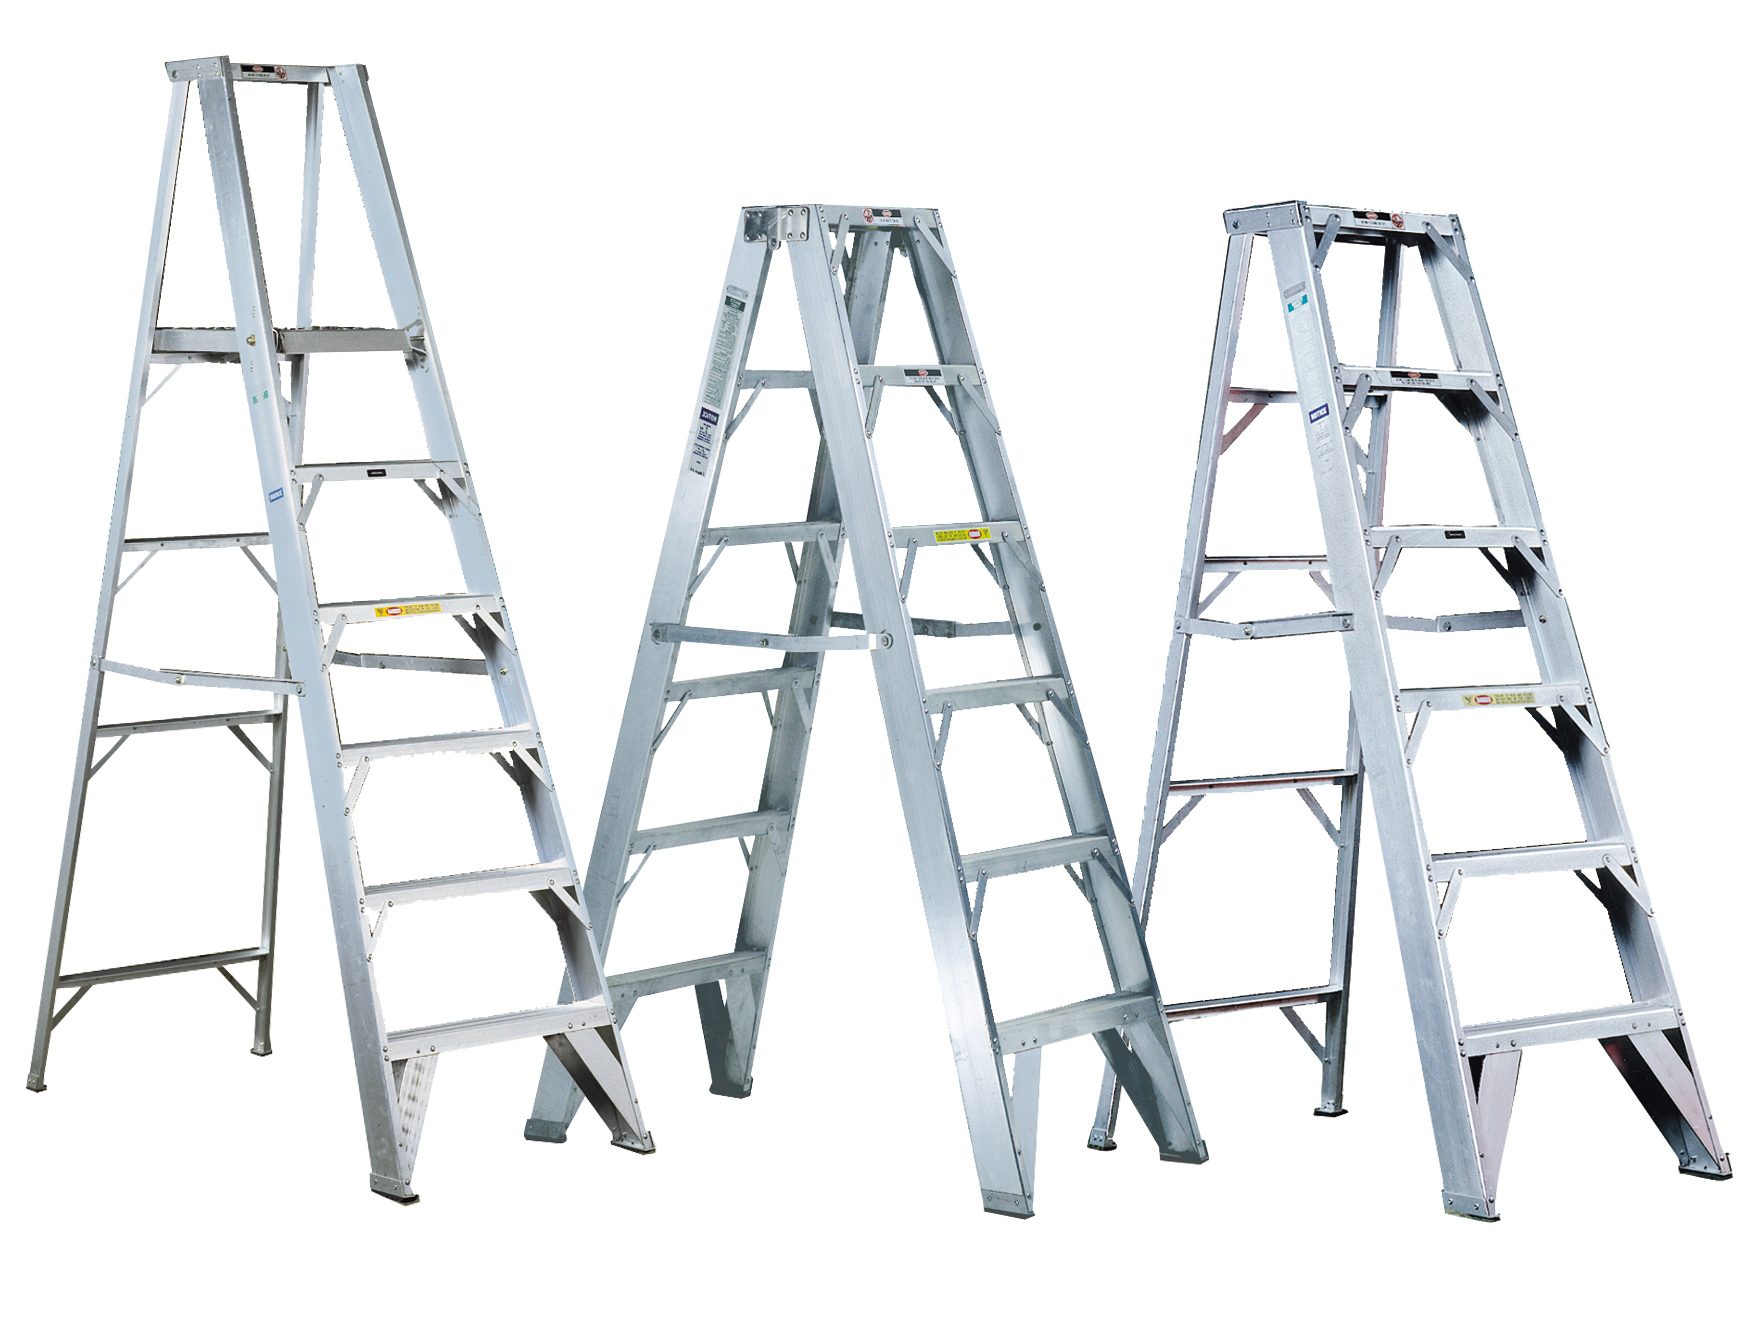 calico ladders fall safety